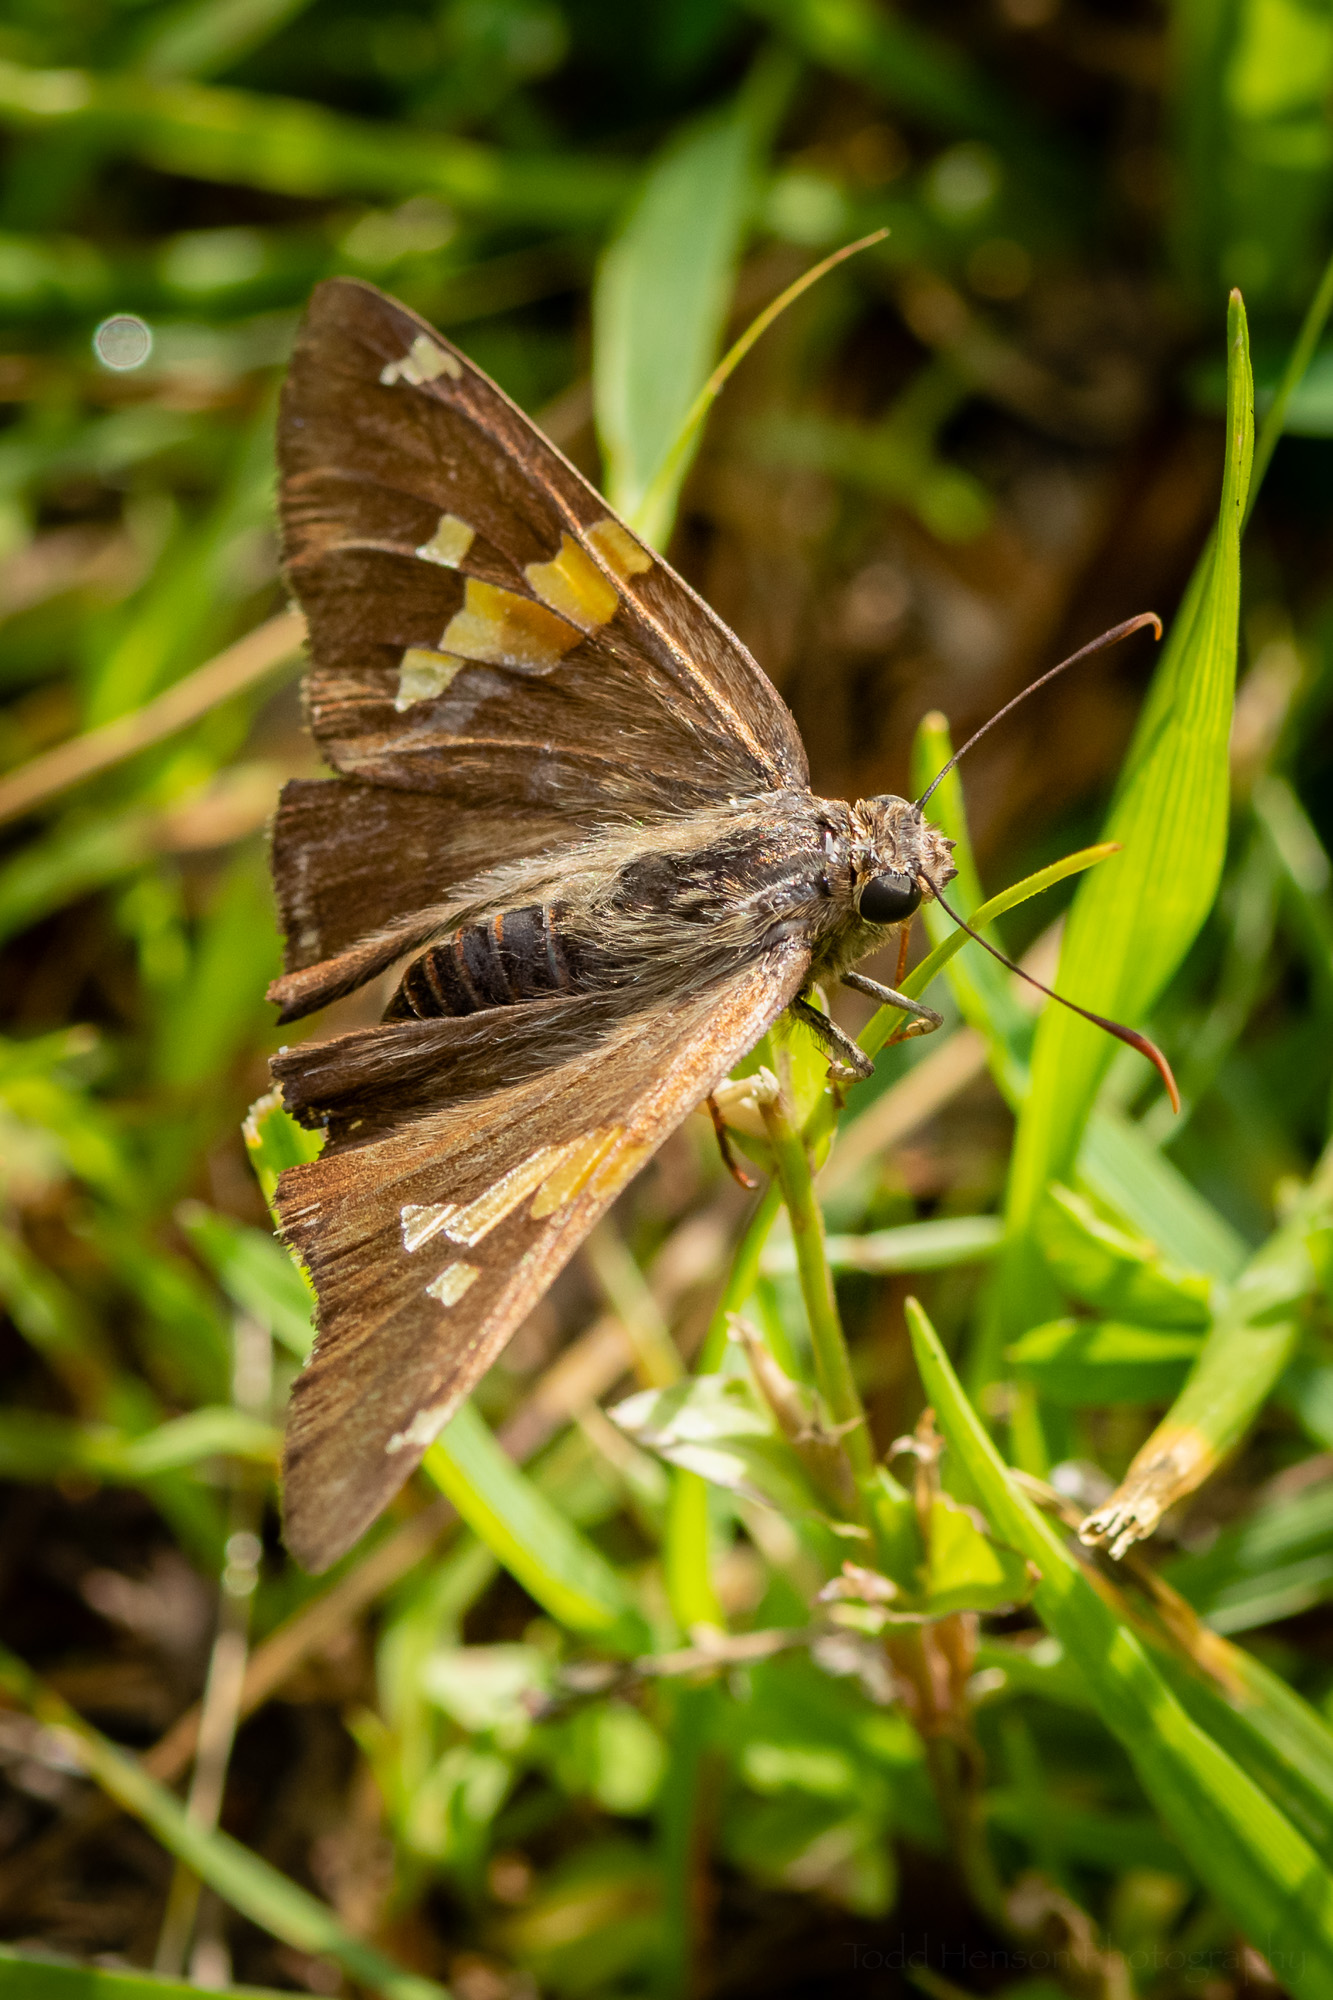 A Skipper butterfly resting on grass. I don't know the specific species of Skipper, but if you do let me know.